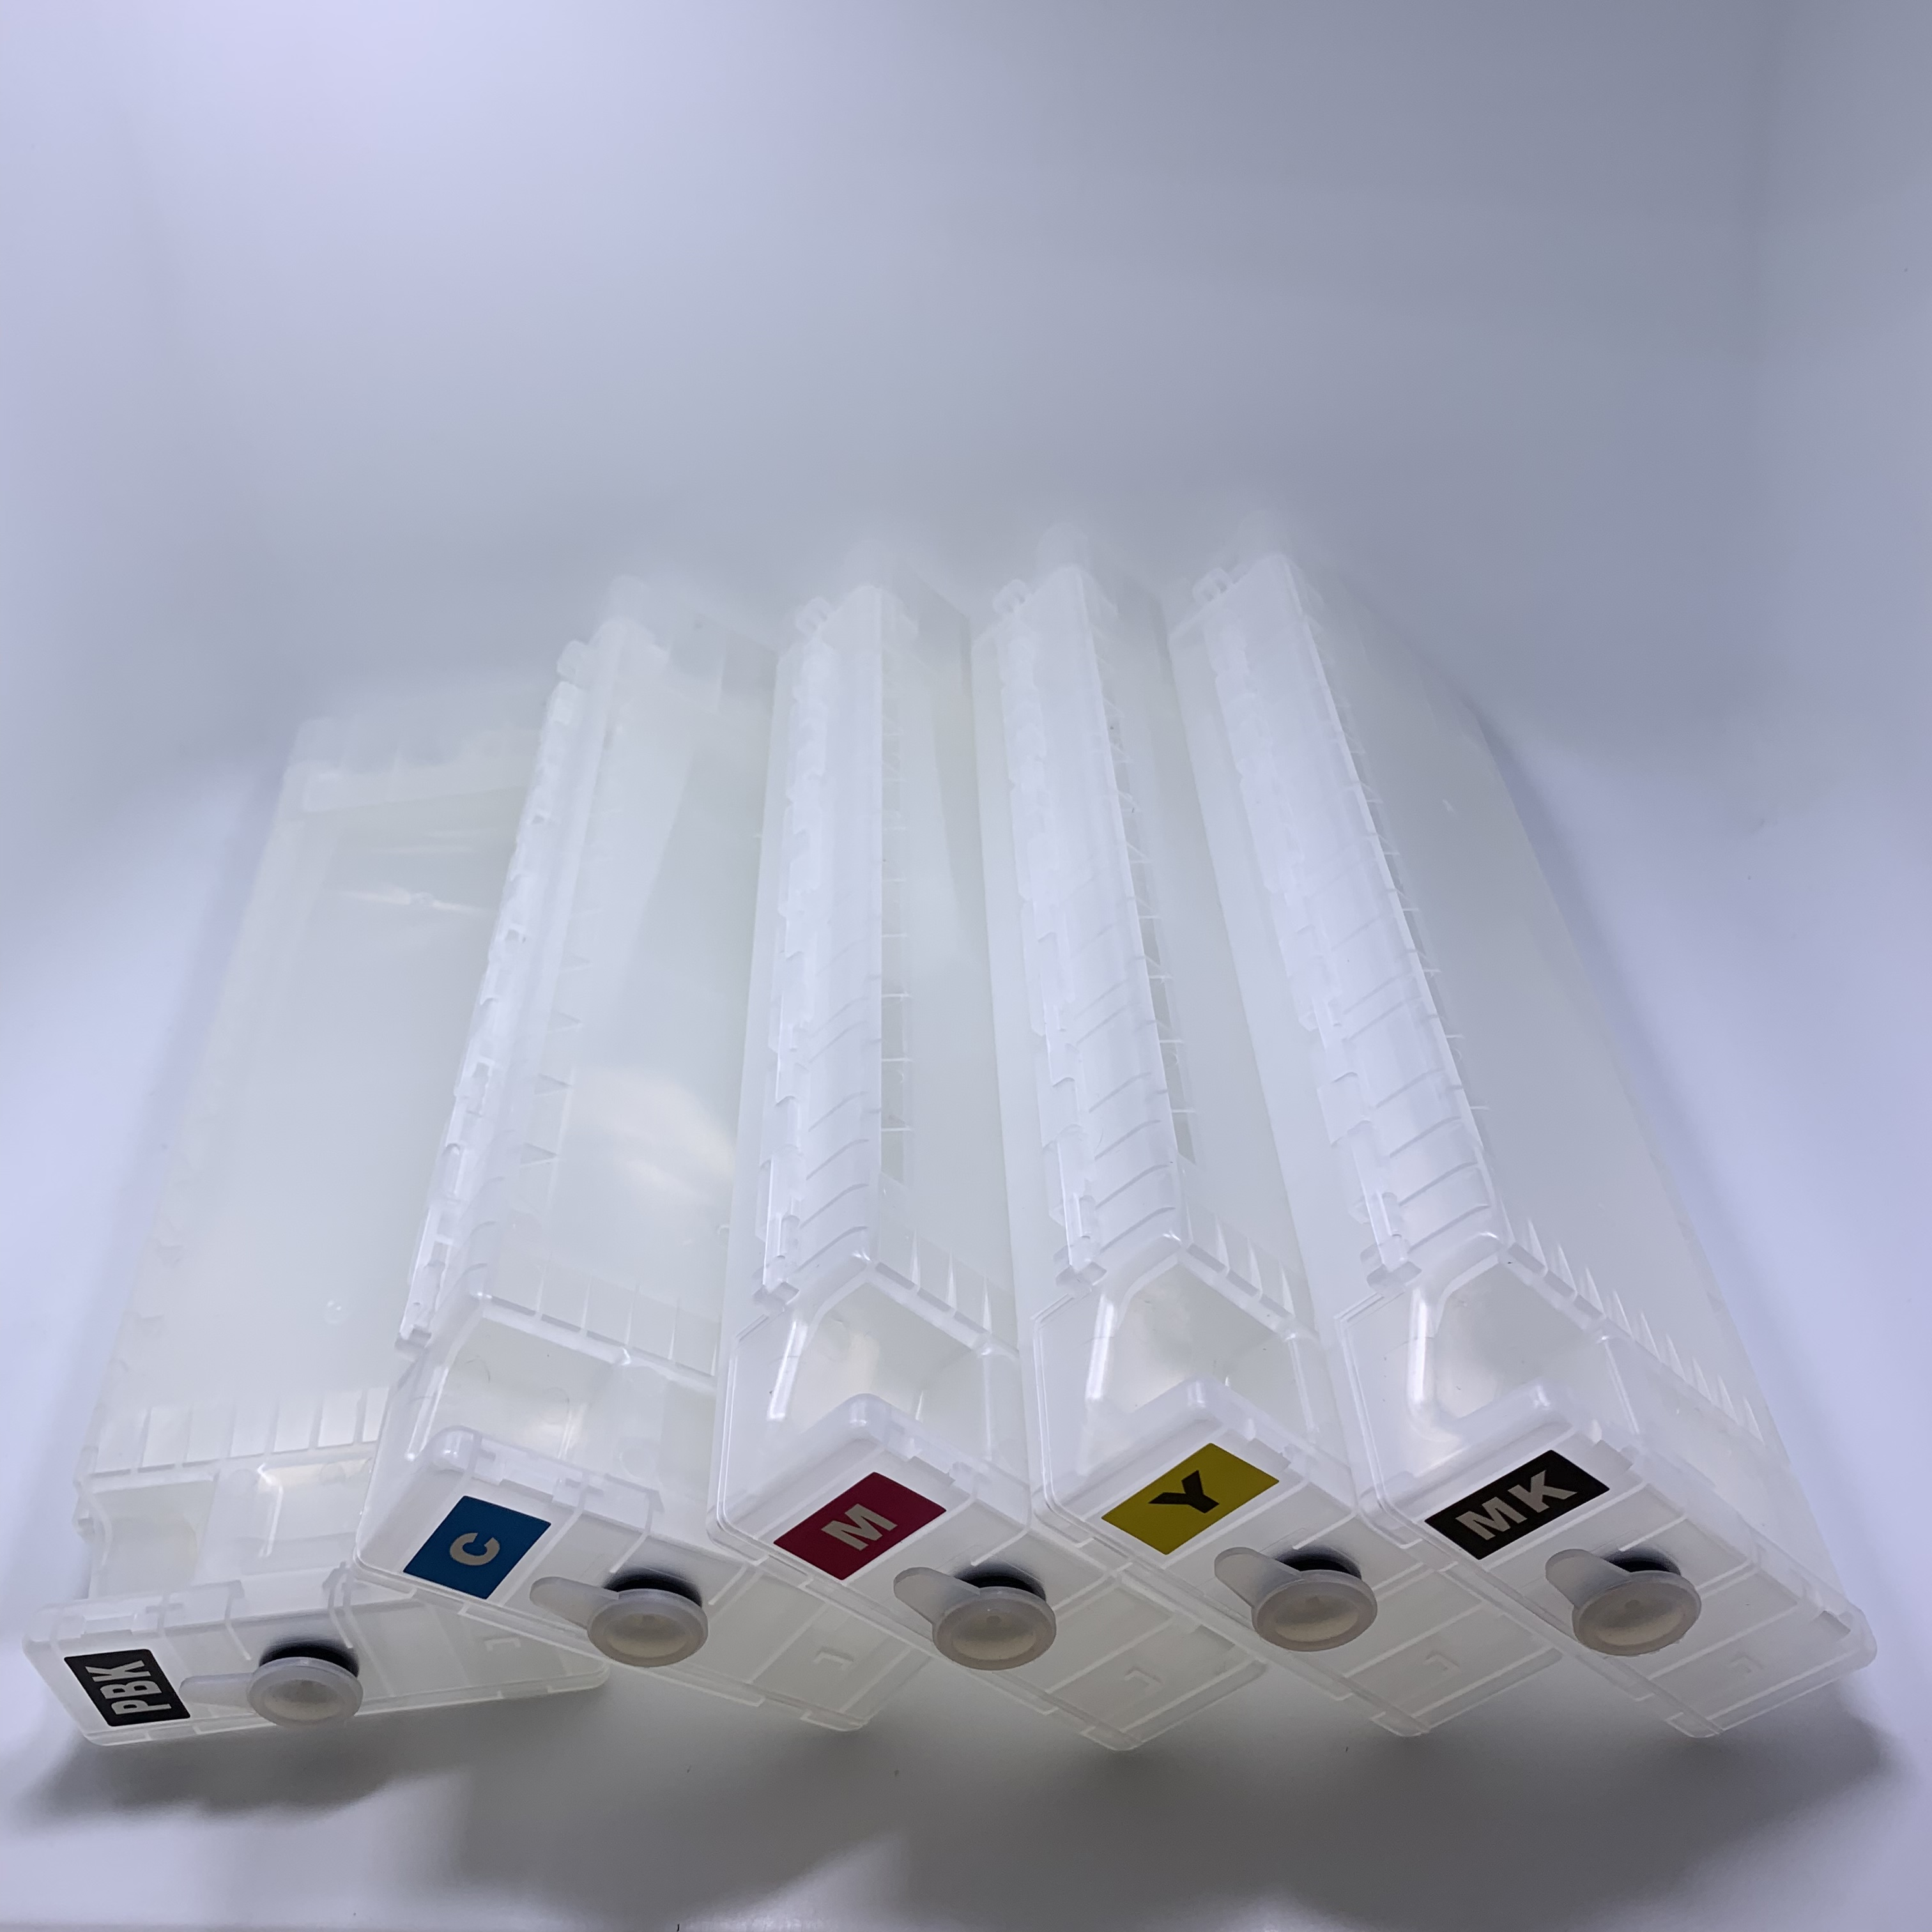 YOTAT 5pcs T6941 for Epson SureColor T7200 T5200 T3200 empty refillable ink cartridge T6941 T6942 T6943 T6944 T6945-in Ink Cartridges from Computer & Office